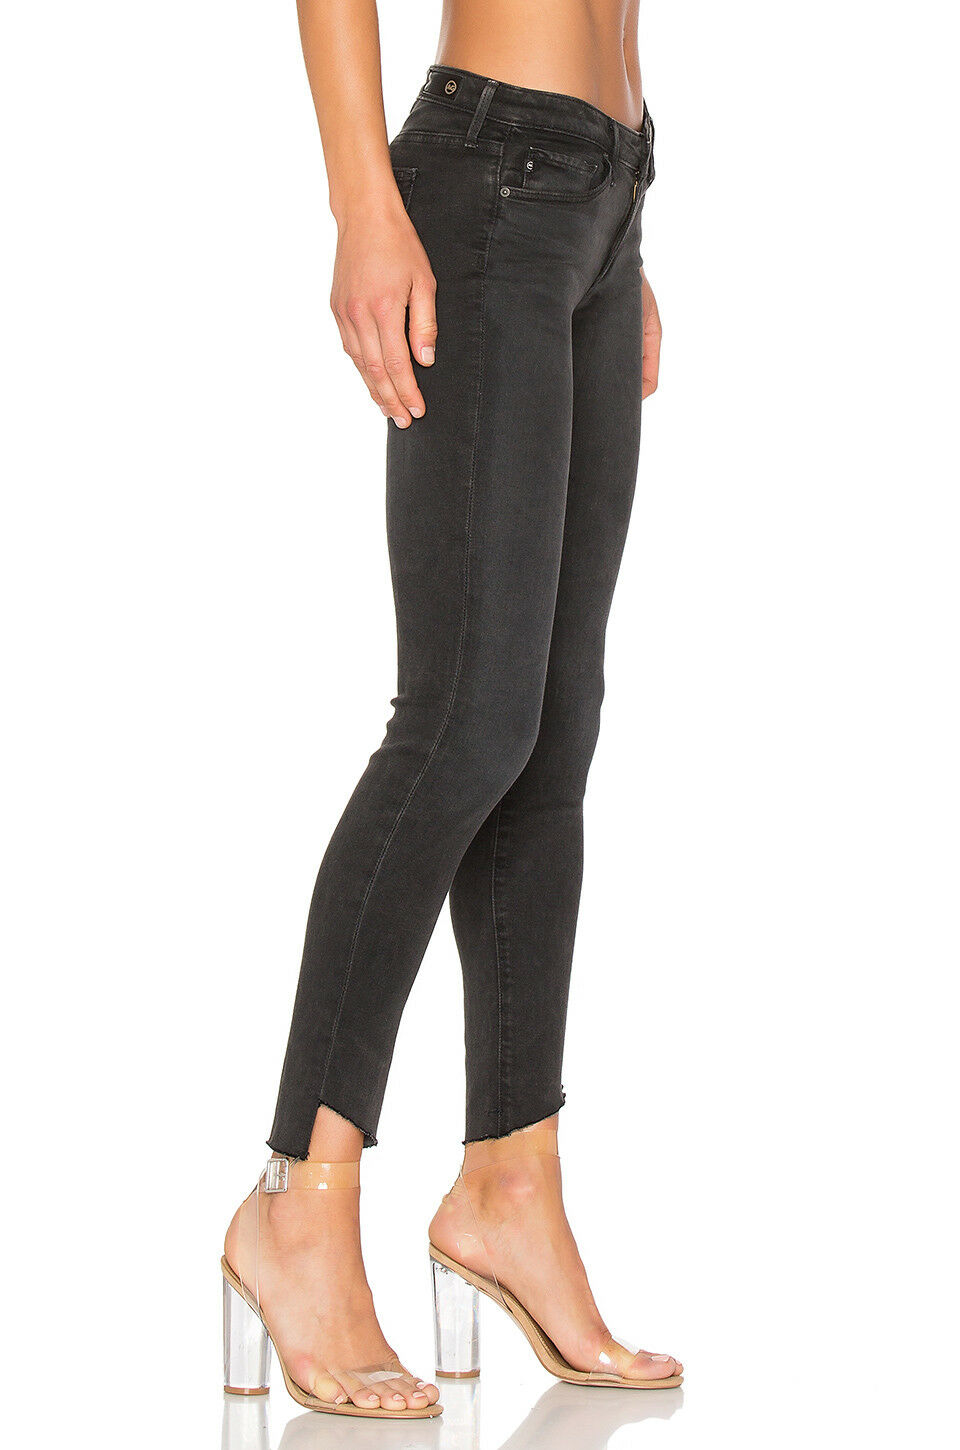 AG The Legging Ankle Super Skinny Crop Stretch Fray Hem Jean – Rustic Black  31 - Luxe Fashion Finds